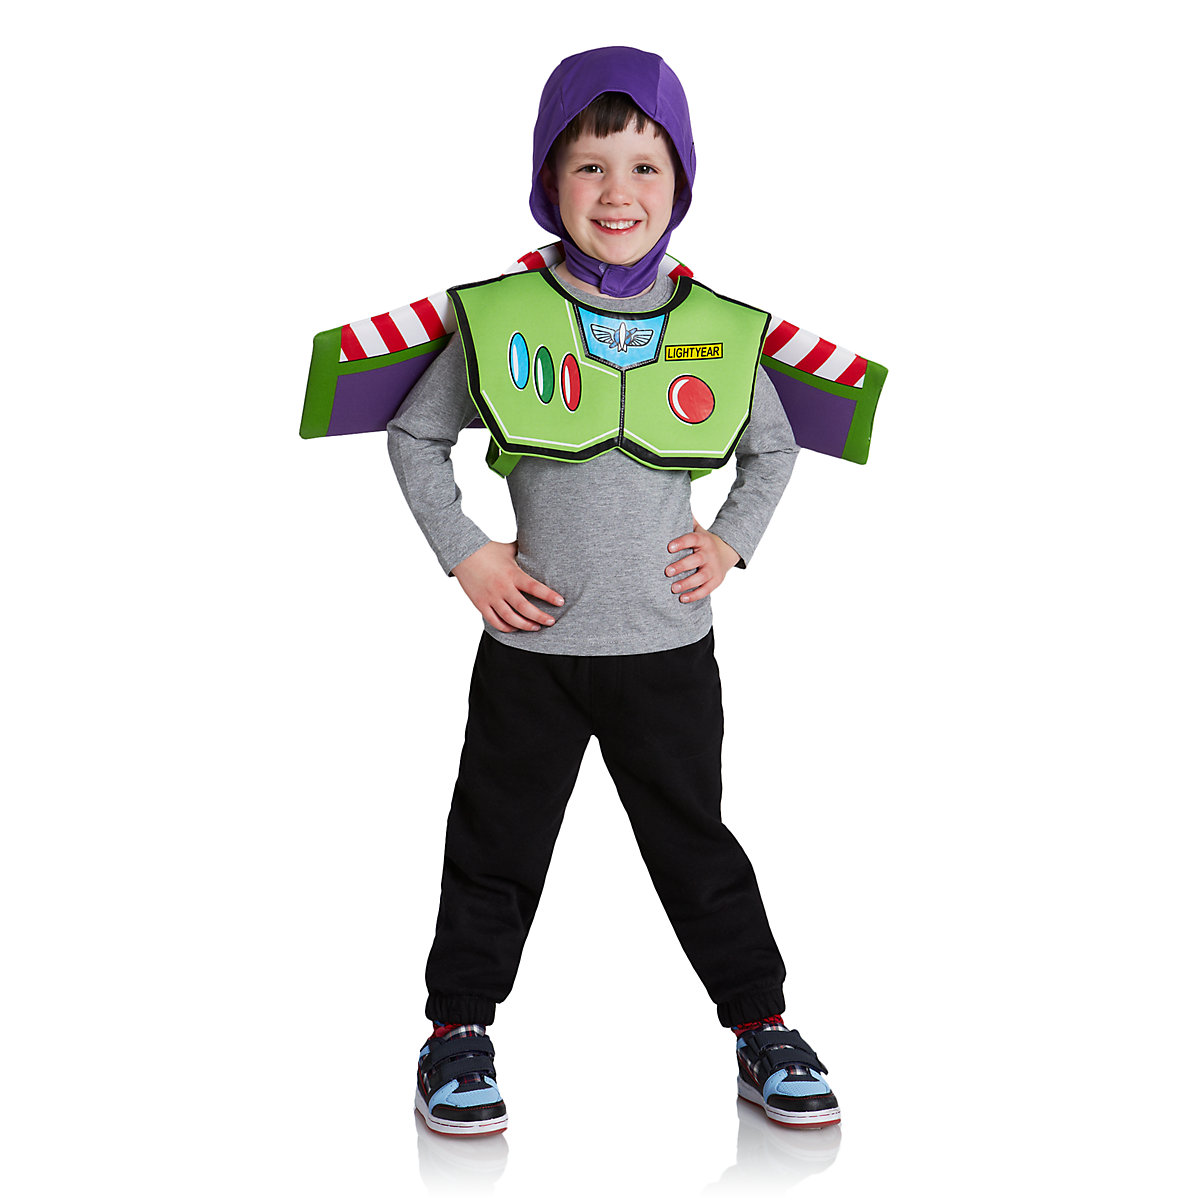 Buzz Lightyear Accessory Pack - Snood, Wings and Tabard - Buzz Lightyear Gifts